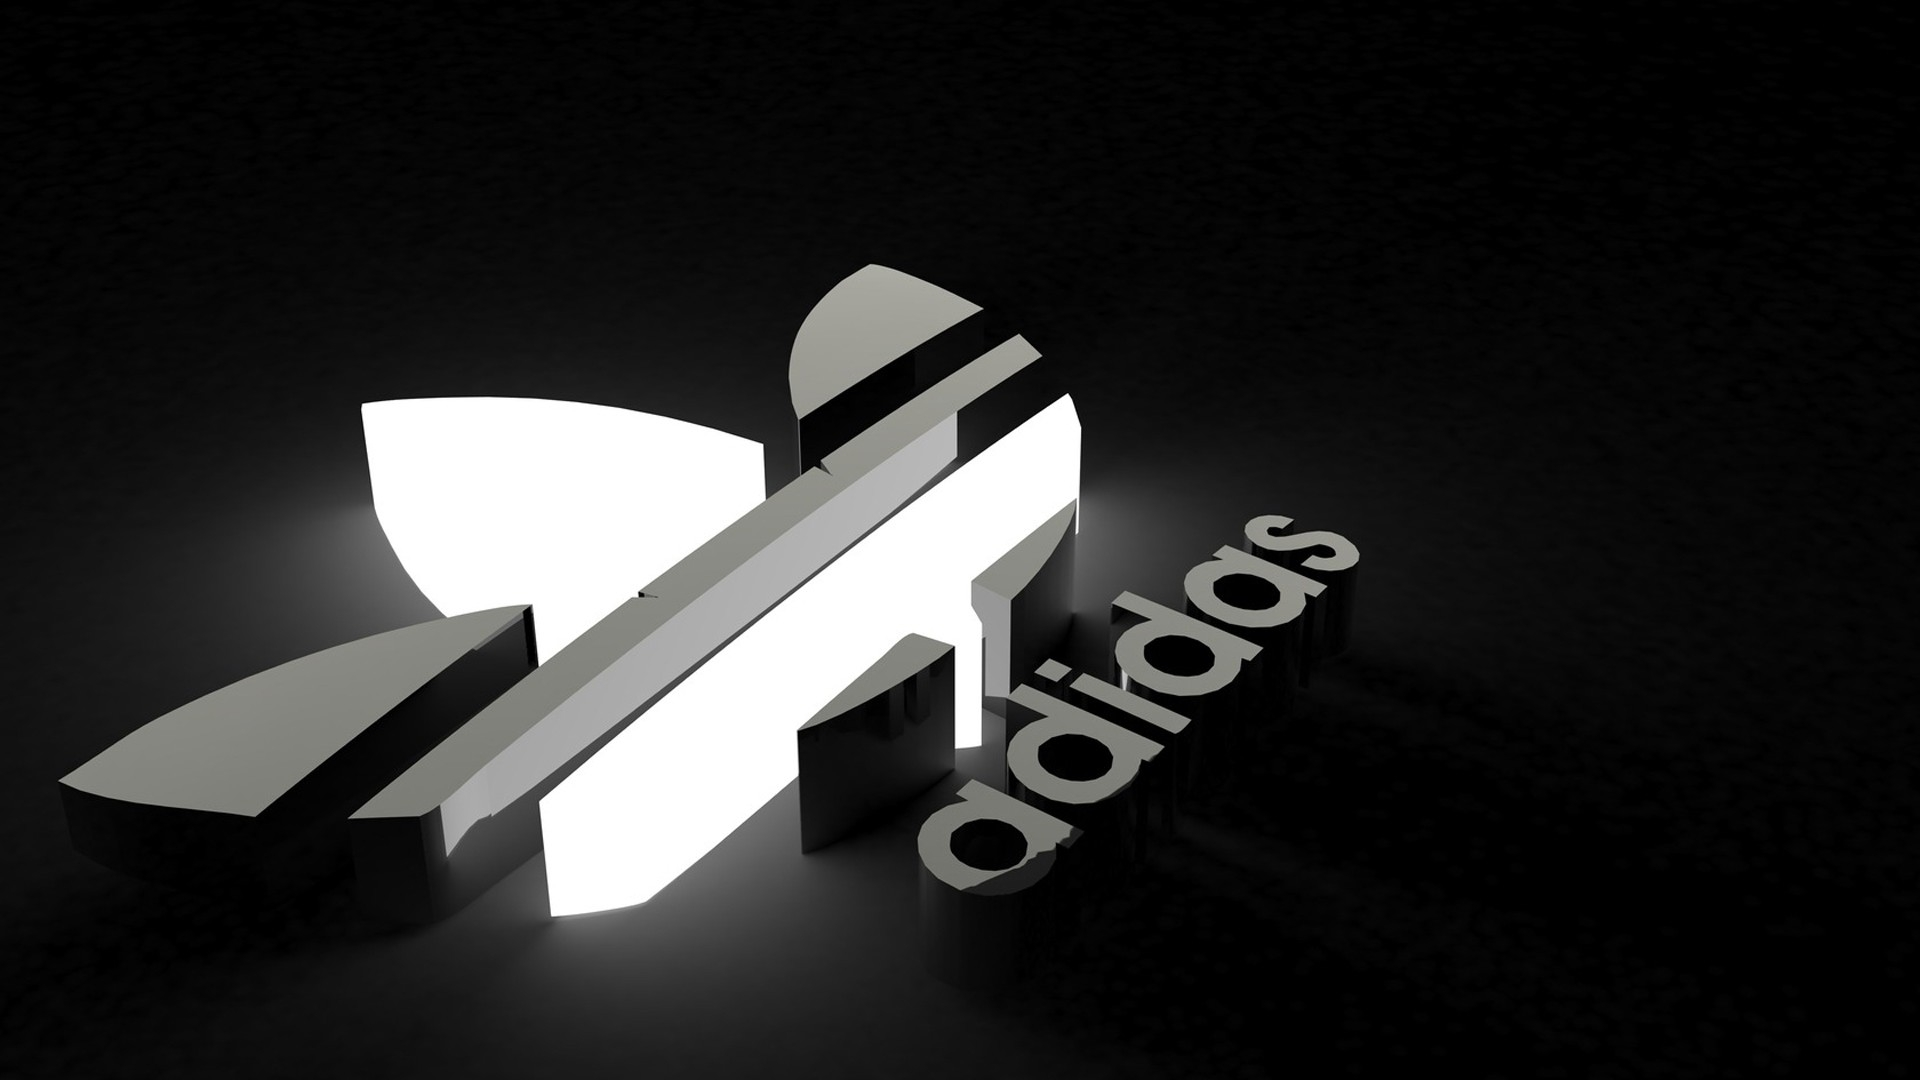 Download Wallpaper 1920x1080 adidas sports business light Full HD 1920x1080